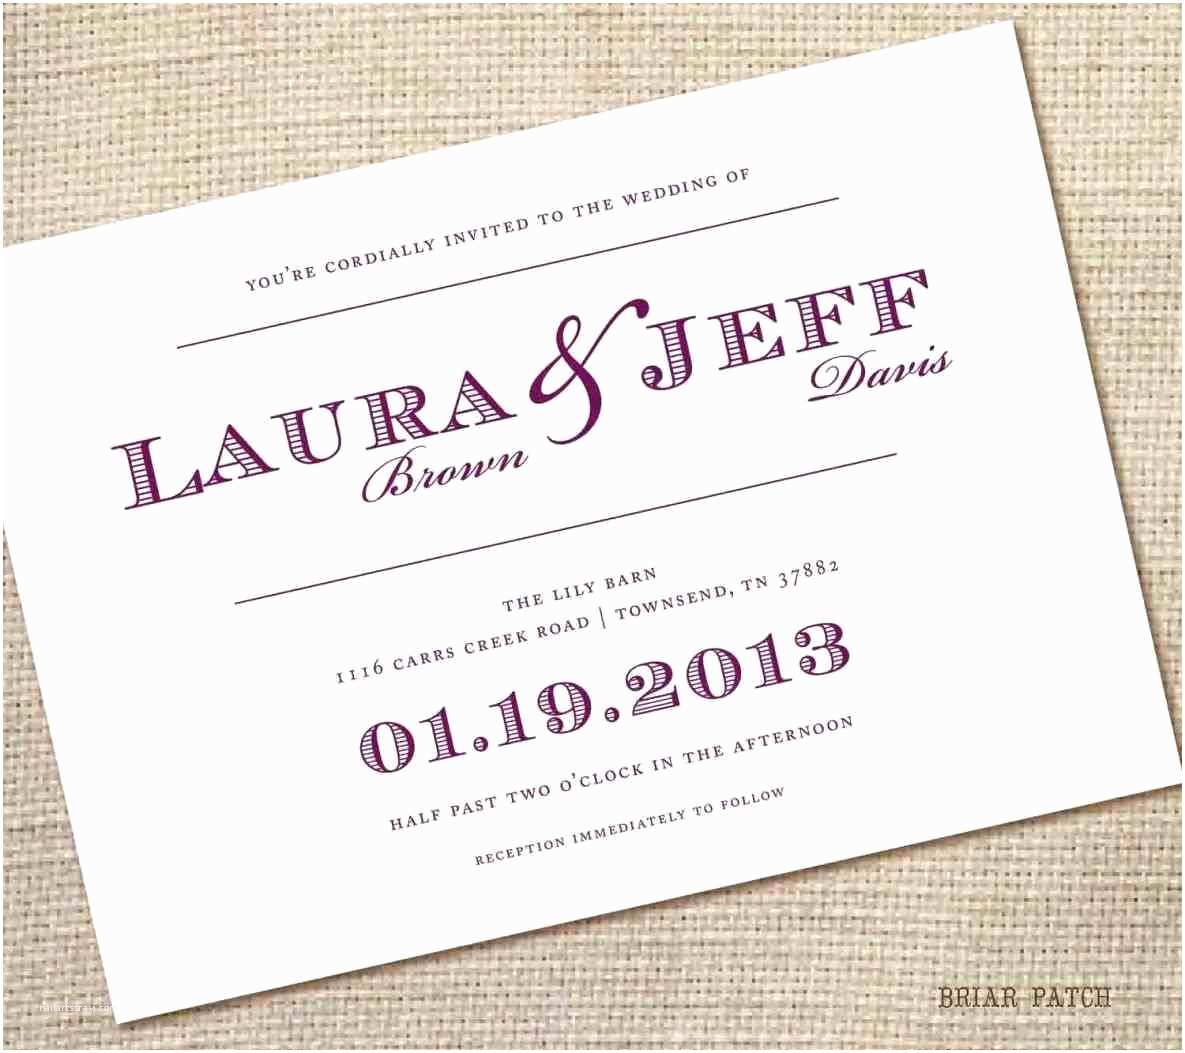 Special Wedding Invitation Wording Unique Wedding Invitations Samples